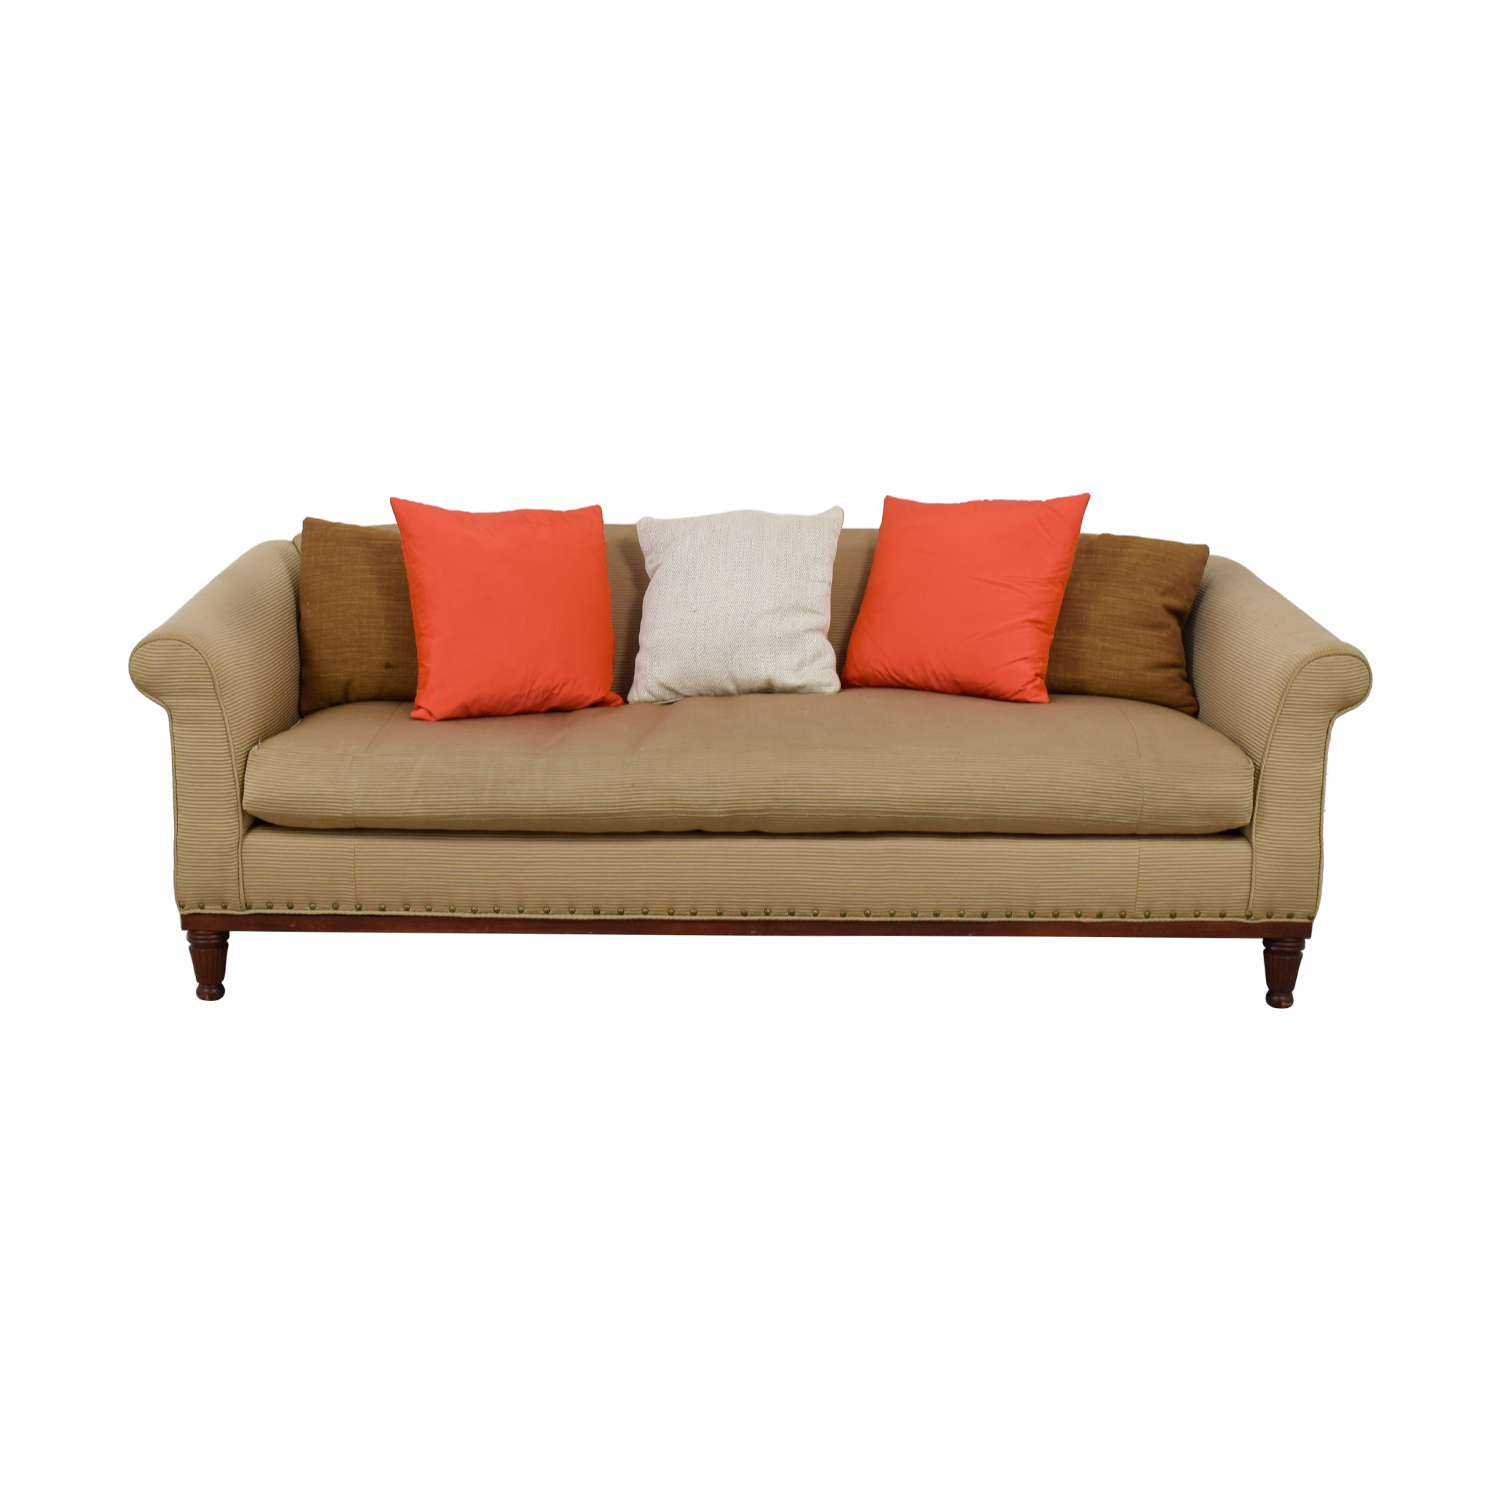 Ralph Lauren Ralph Lauren Tan Chinoisserie Nailhead Sofa on sale